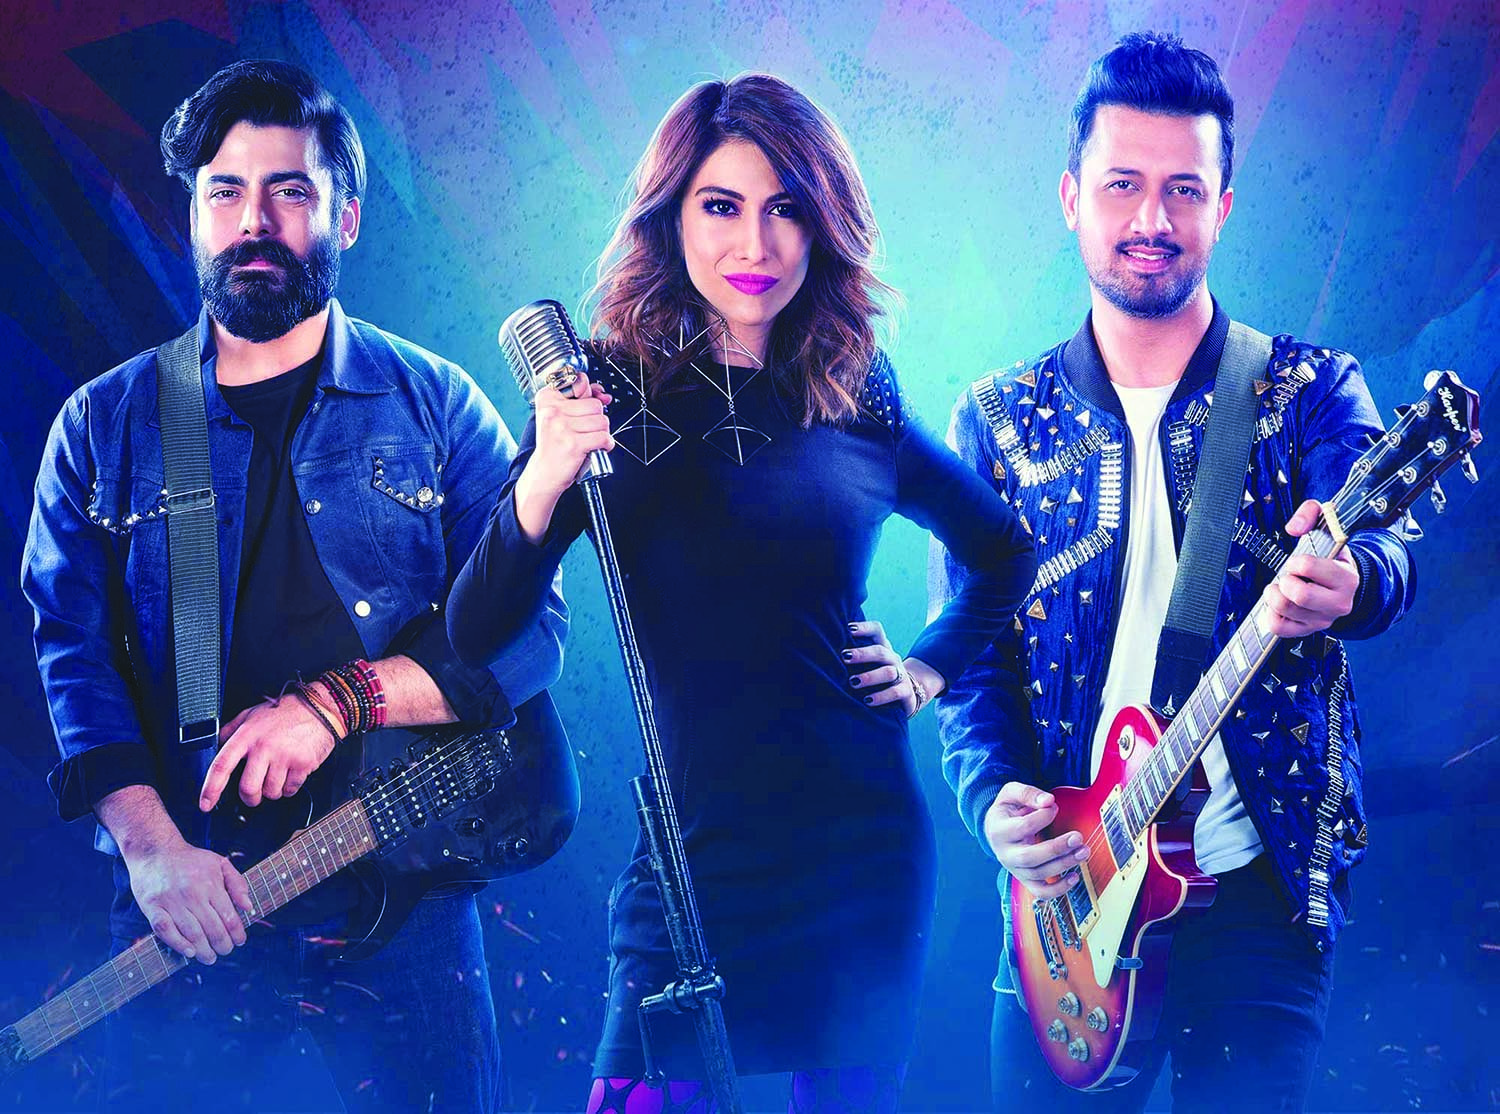 Fawad Khan, Meesha Shafi and Atif Aslam were on the panel of judges for the Pepsi Battle of the Bands in 2017. The show was aired on PTV in 2002, but discontinued after the first season. It was then revived last year as according to the brand's consumer research, there was a dearth of platforms where young people could display their musical virtuosity. Although Pepsi was the pioneer in the genre of brand-sponsored musical reality shows back in 2002, since then, a host of brands have launched their branded music shows, including Coke Studio, Nescafé Basement and Strepsils Stereo, to promote the industry and provide exposure to new talent.